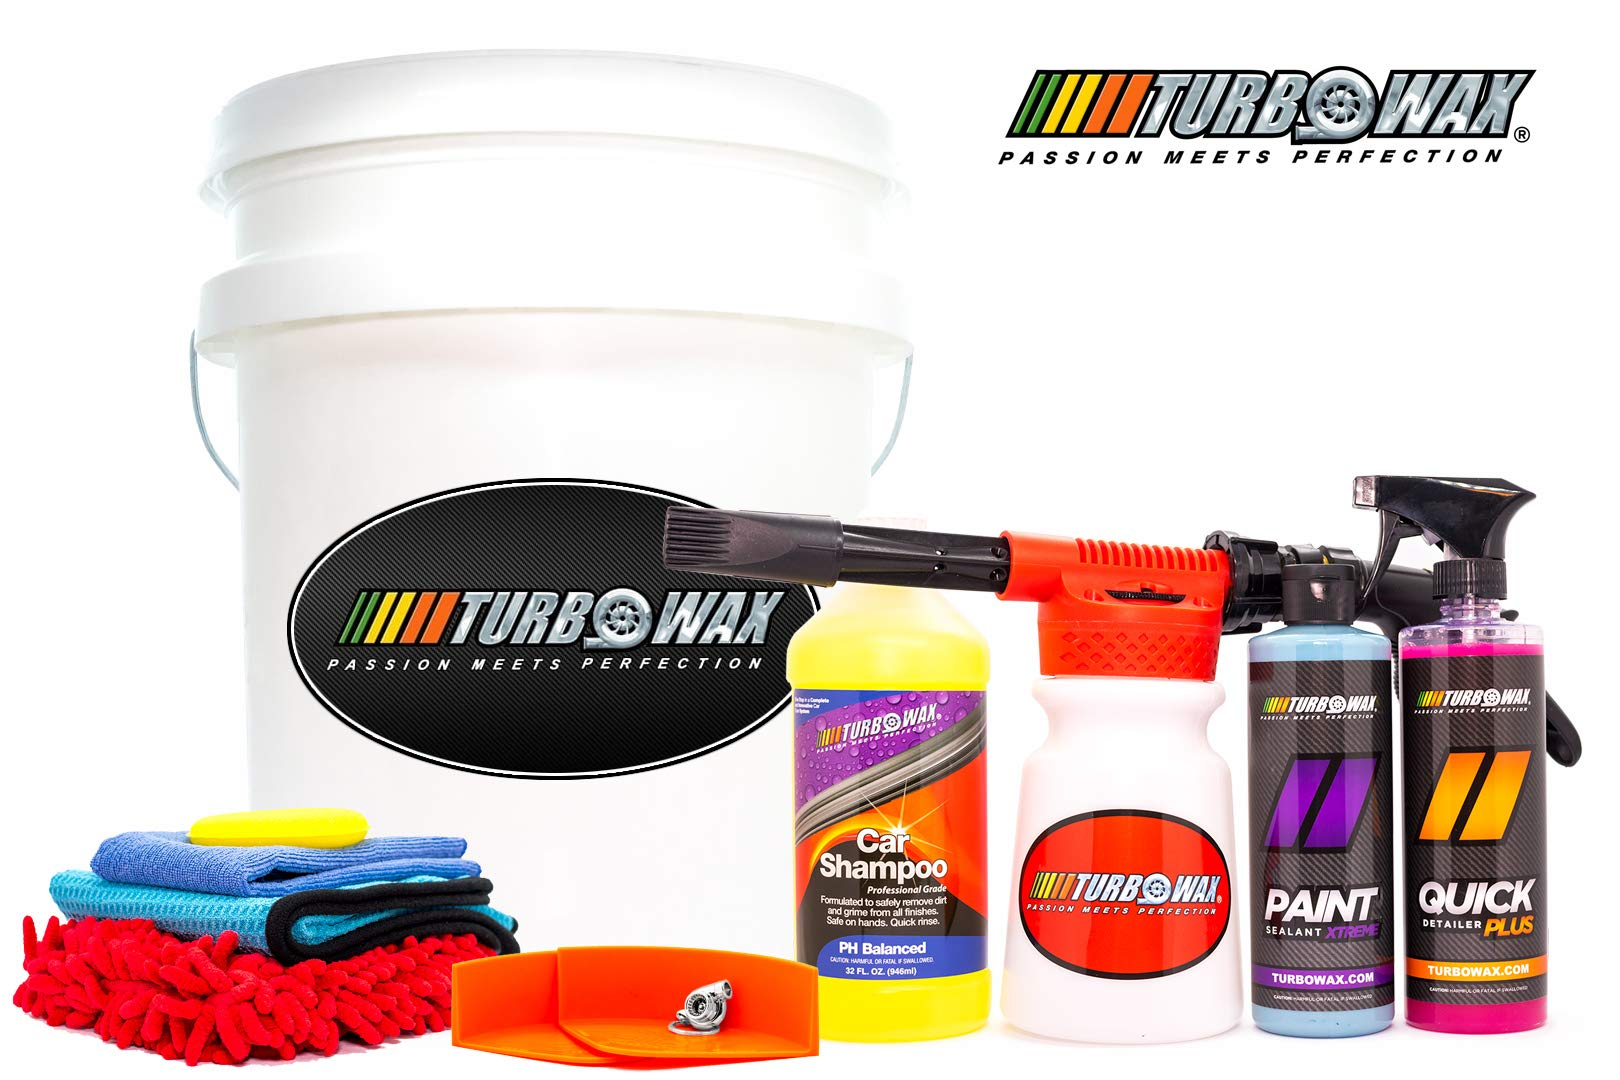 Turbo Wax Leather, Vinyl and Rubber Protectant with Polycharger 16oz Bottle, Prevents Cracking and Fading (2)